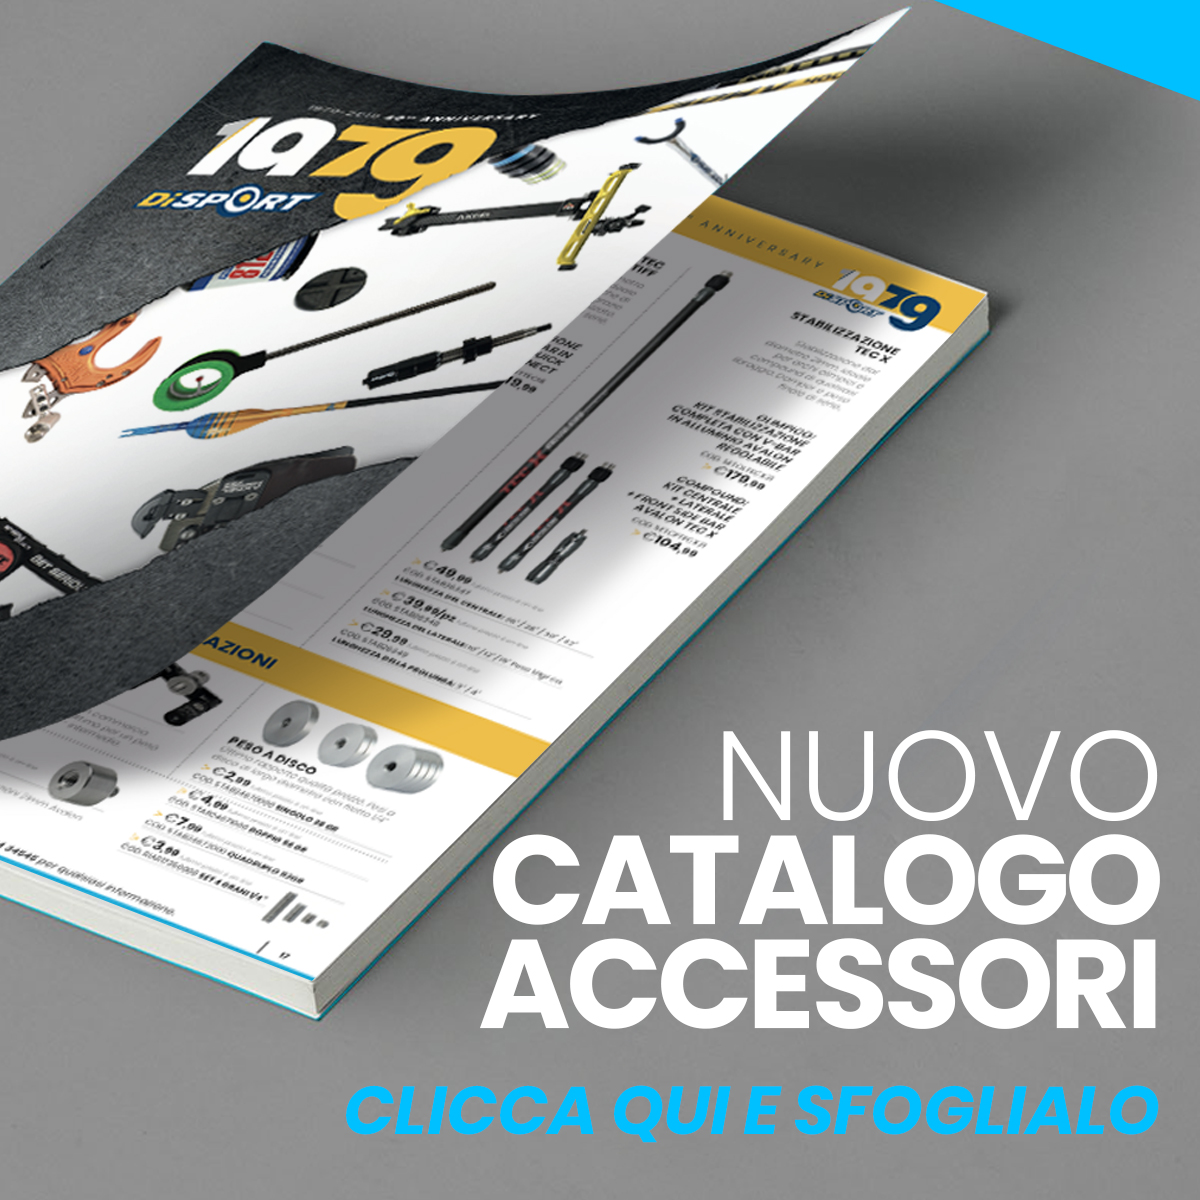 Catalogo Accessori Disport Tiro con l'Arco 2020